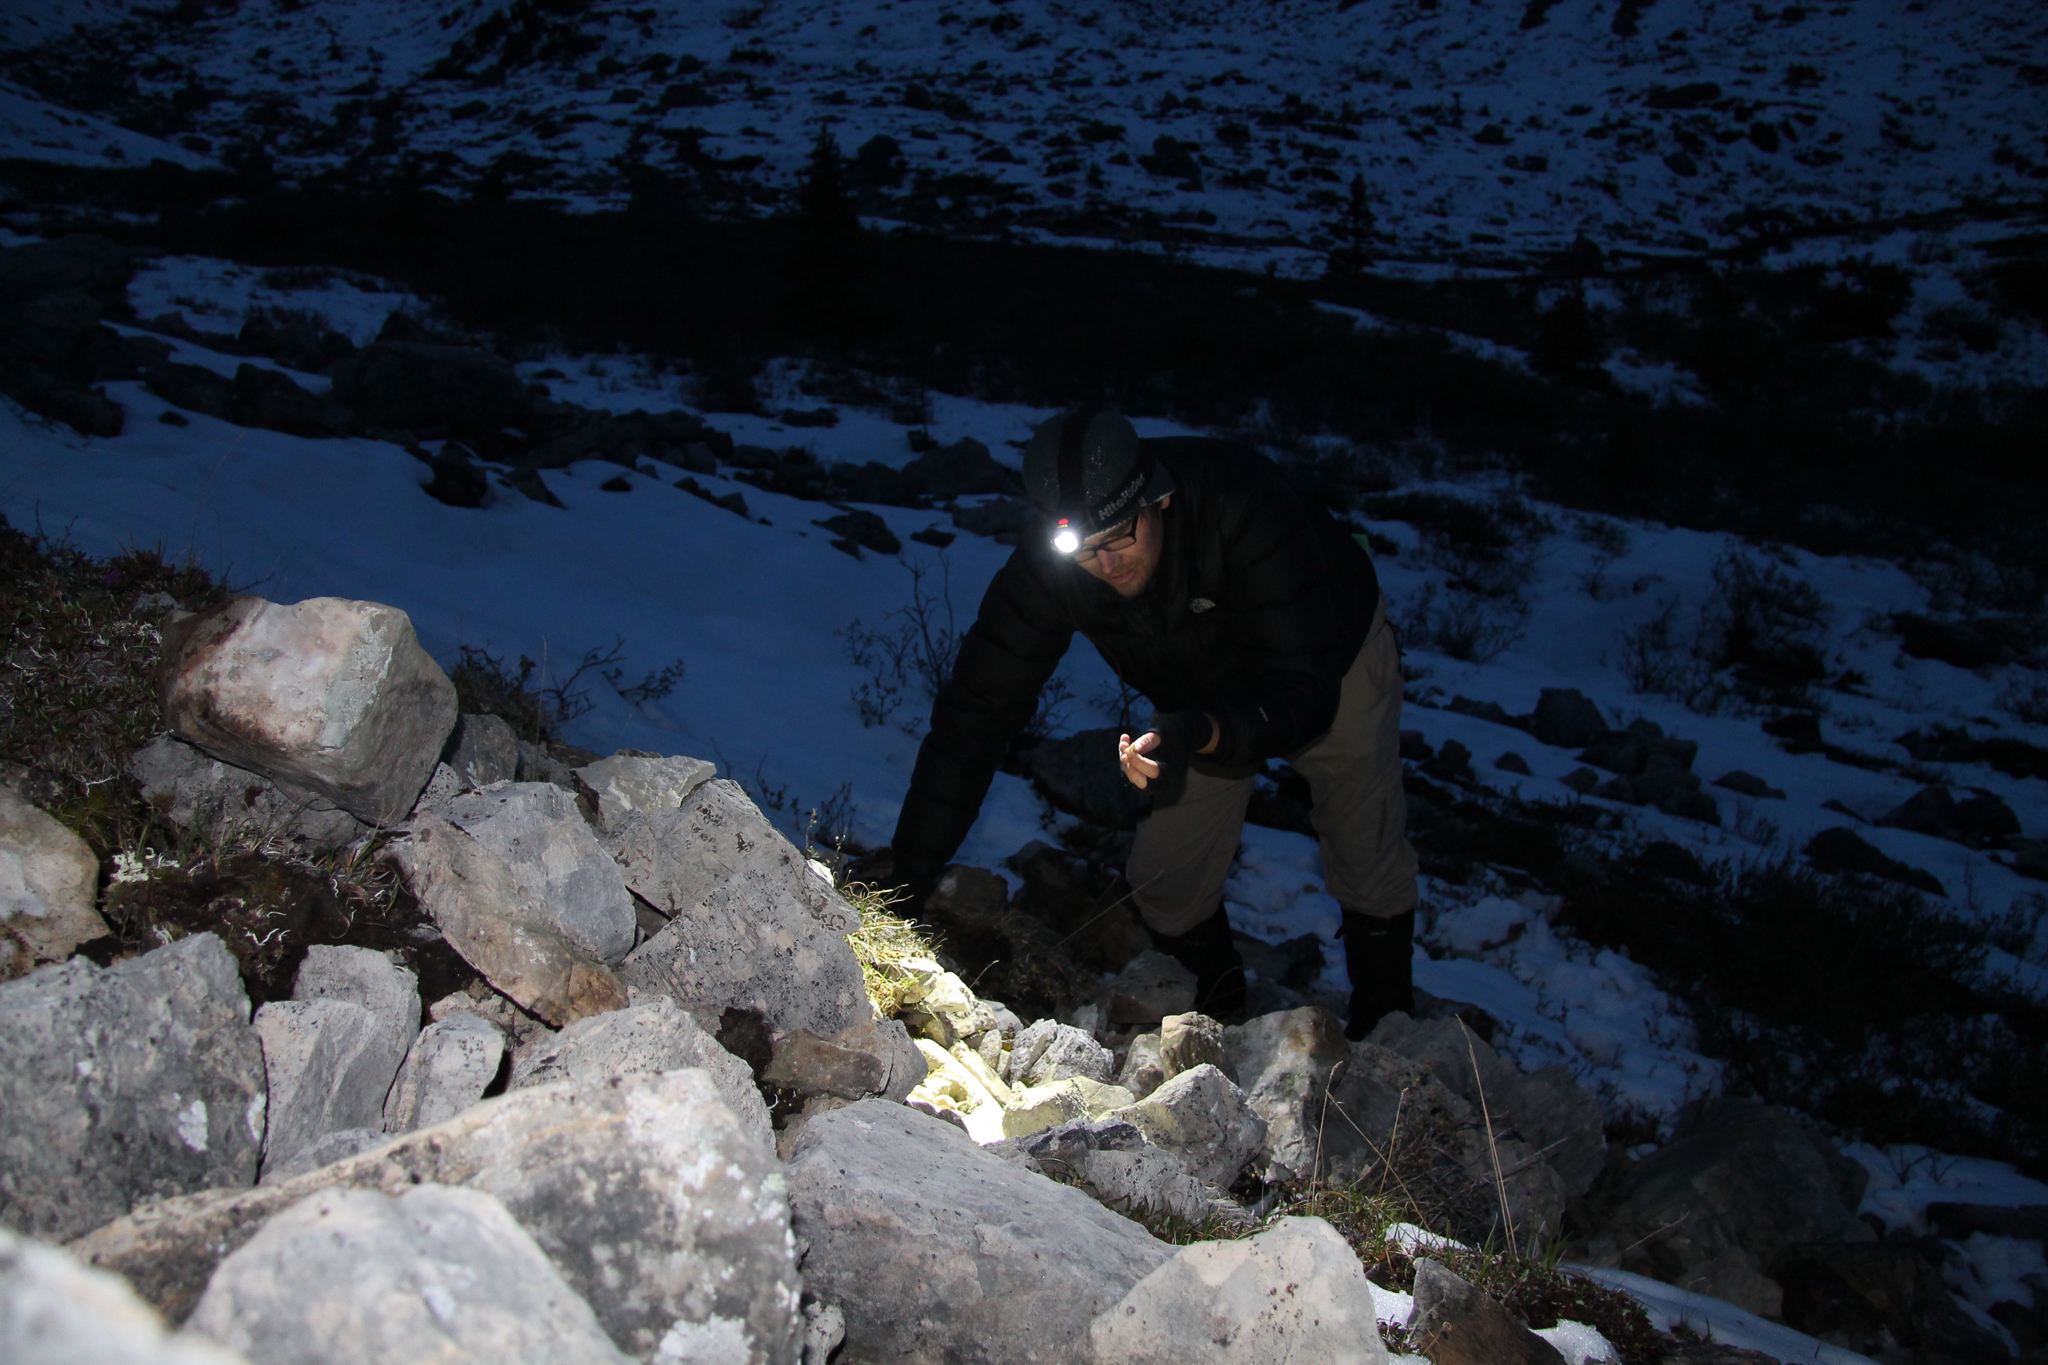 Entomologist Sean Schoville retraces the steps of Joseph William Kamp, the last person to collect ice crawlers at Mount St. Paul was. Kamp believed this region, at the northern end of the Rocky Mountains, served as an oasis for ice crawlers during the last ice age.